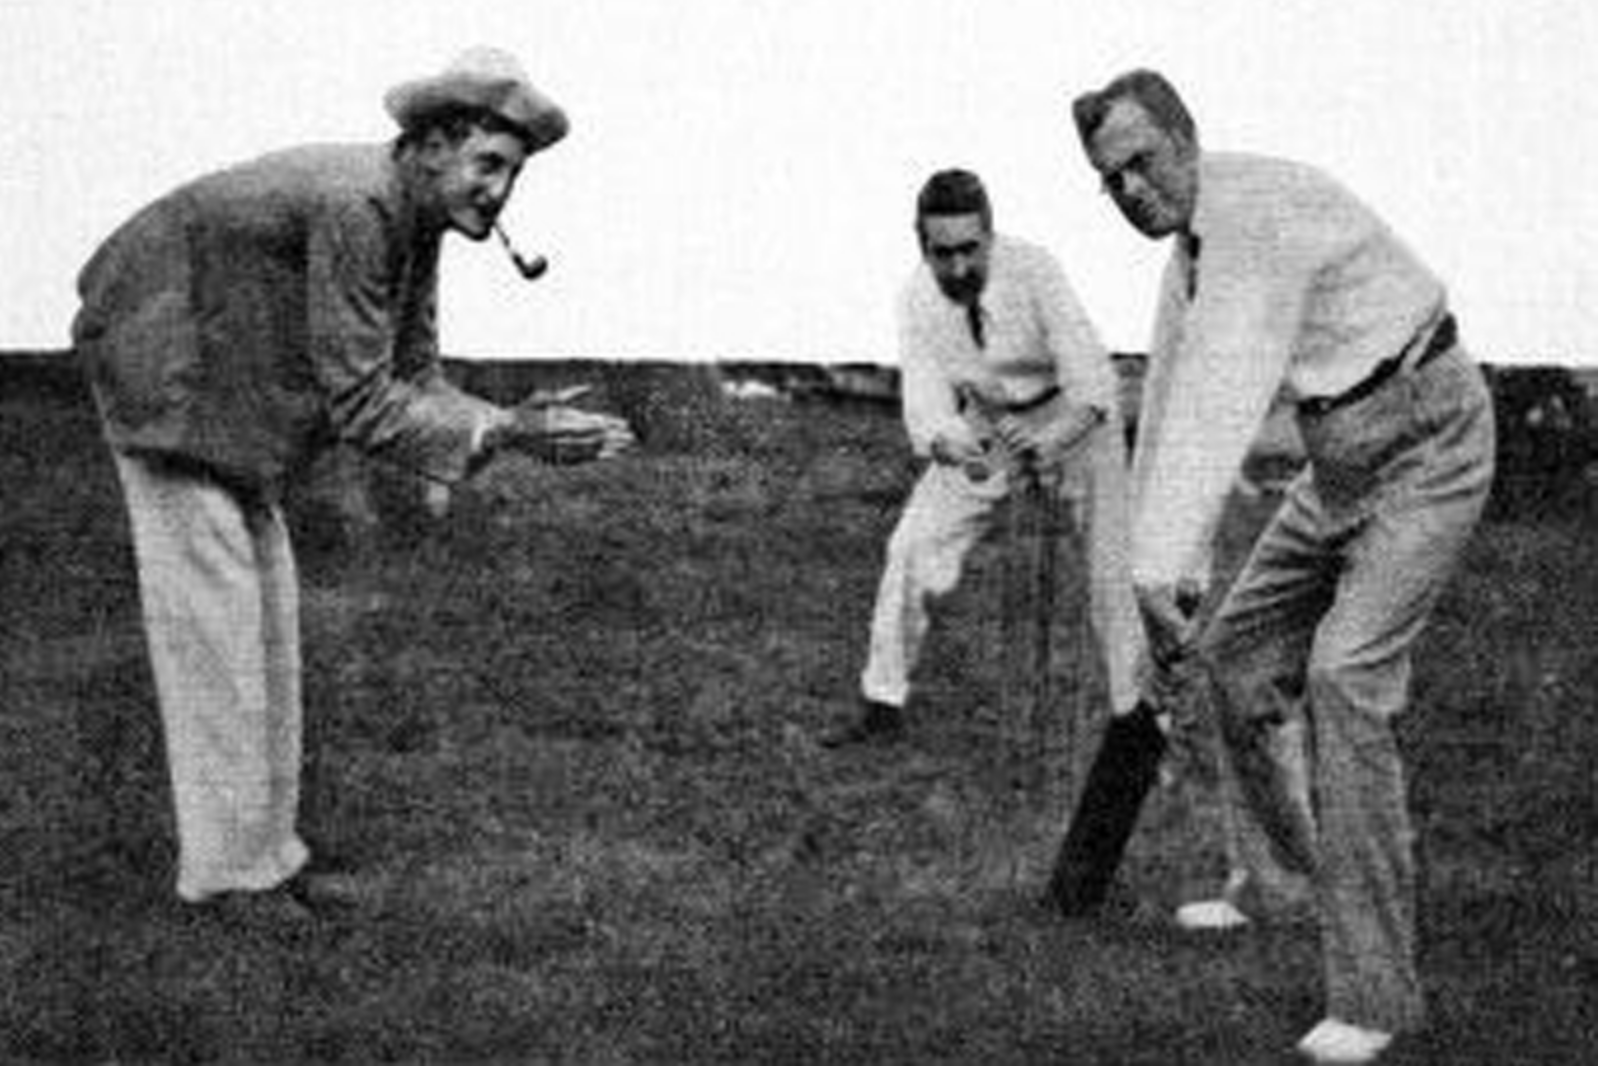 Cricketers play the game in the early 1900s